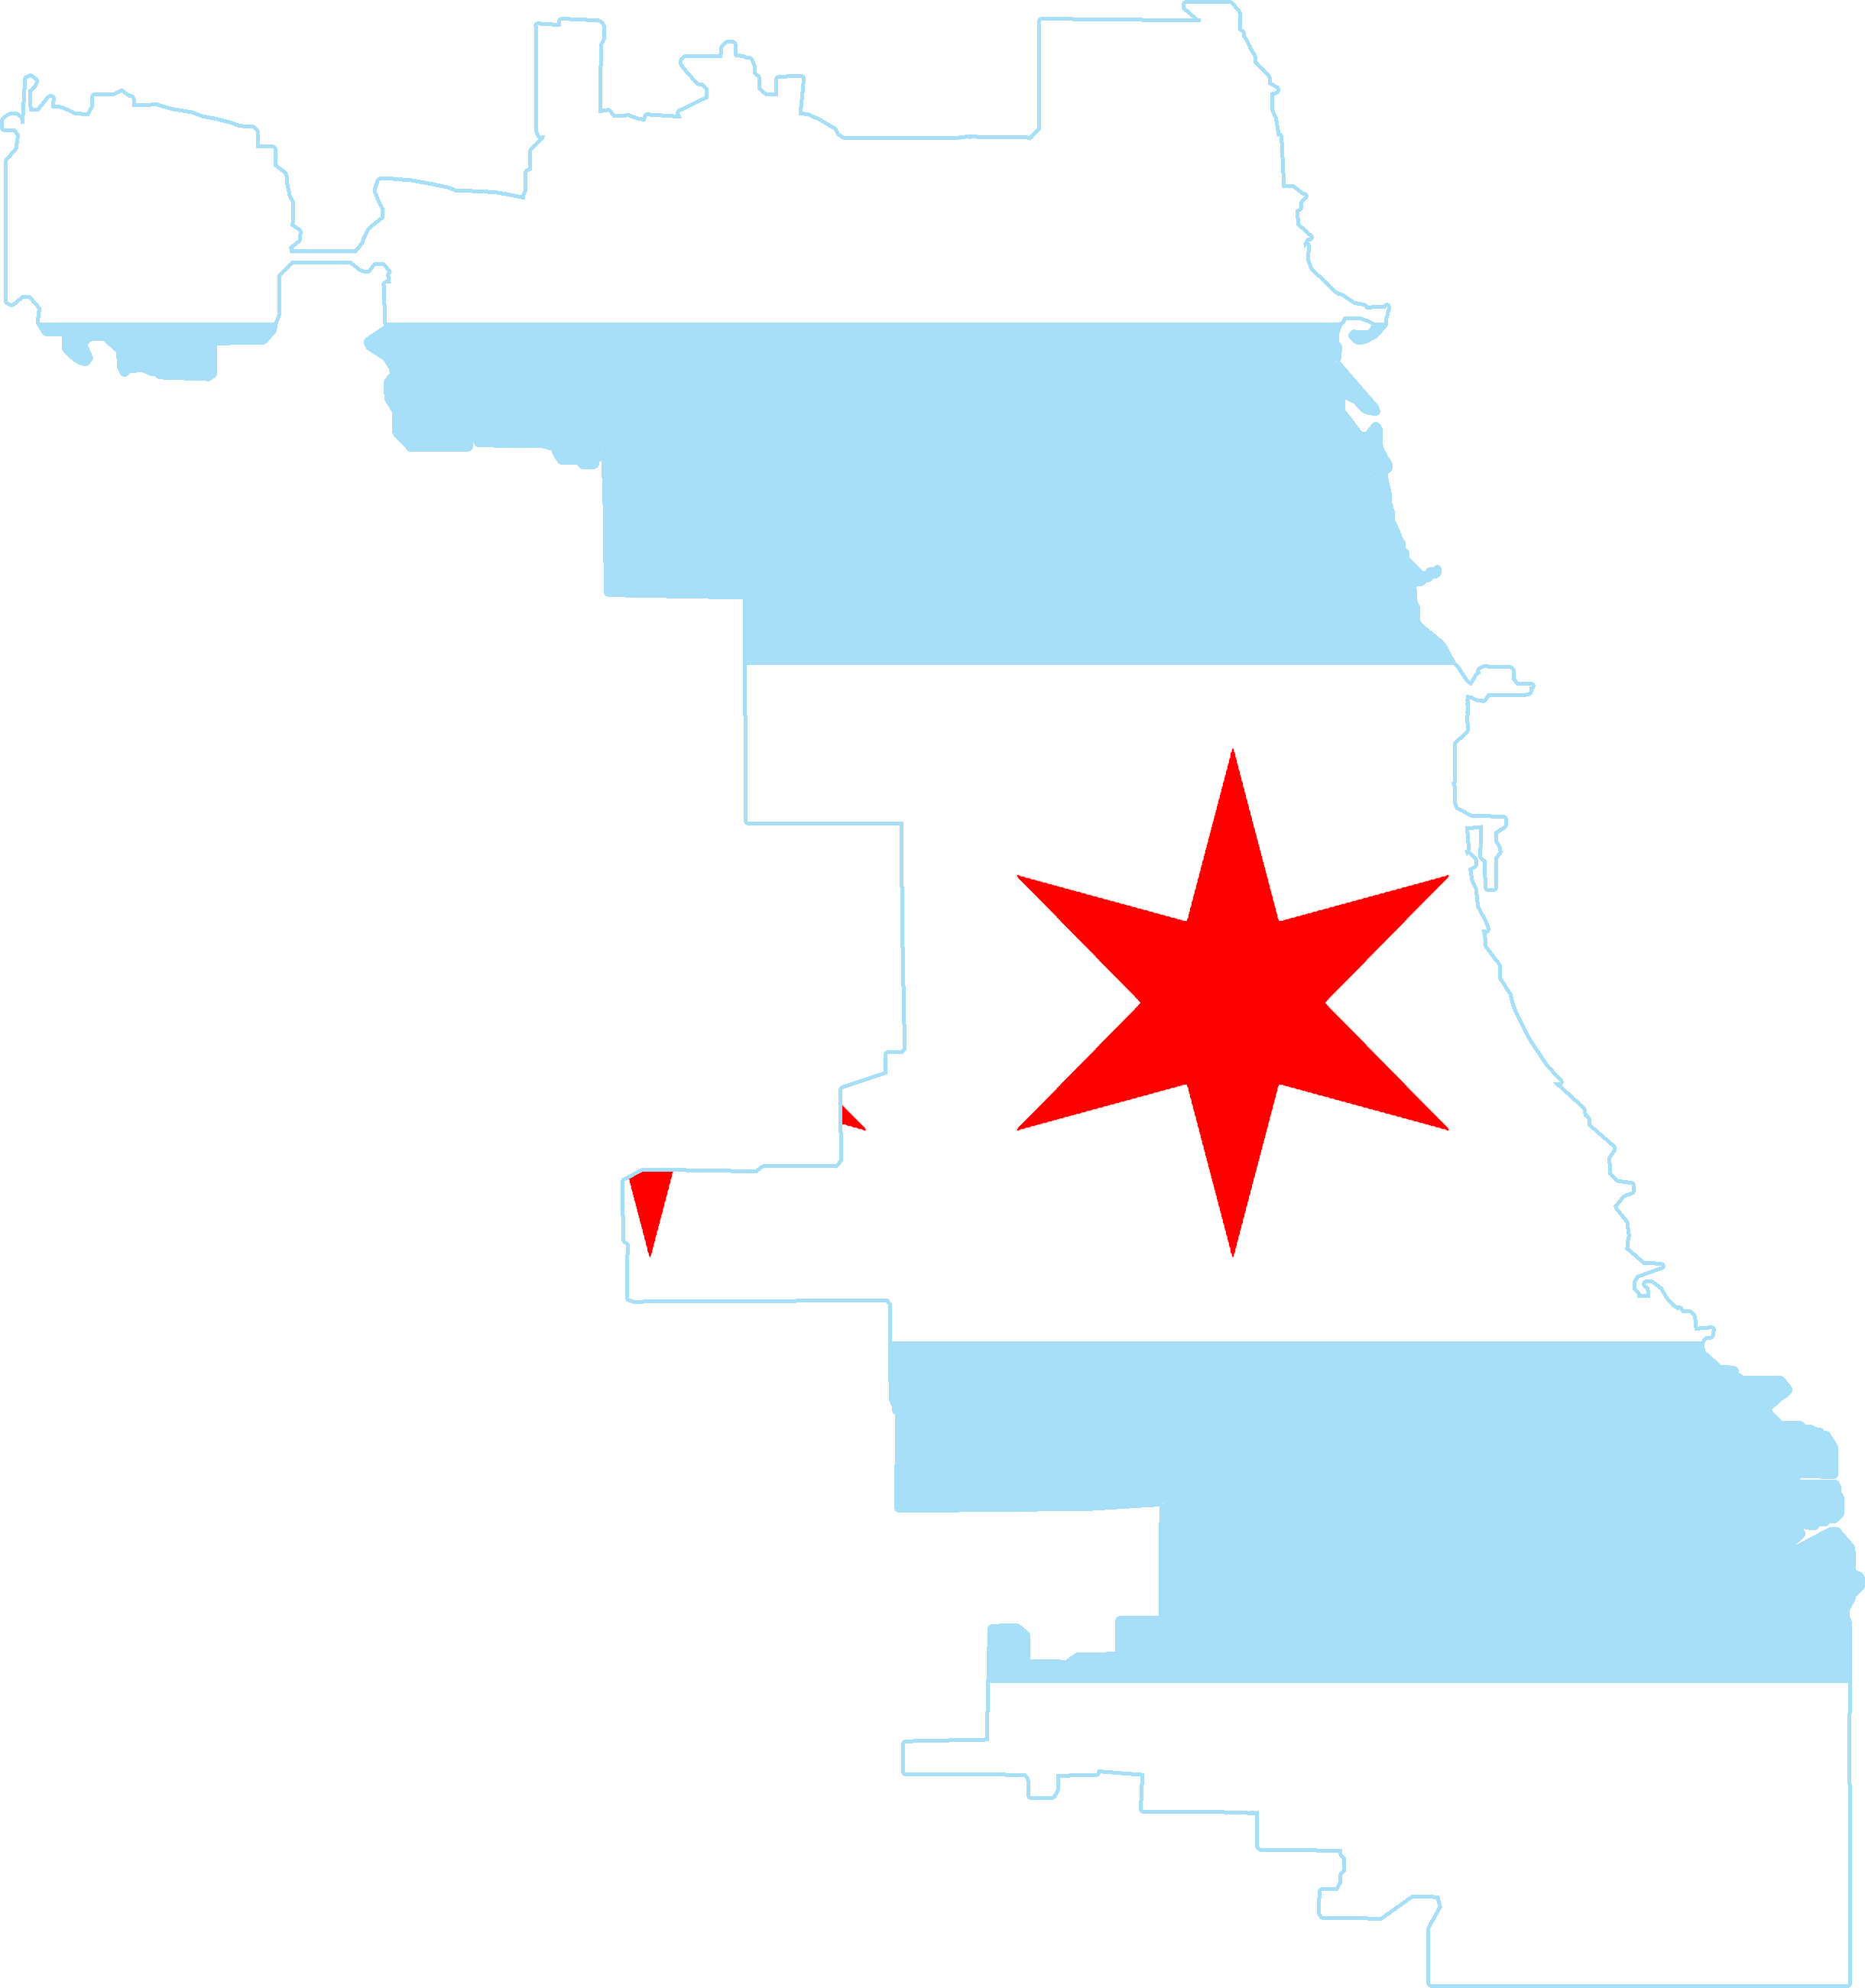 FileFlag map of Chicagopng Wikimedia Commons